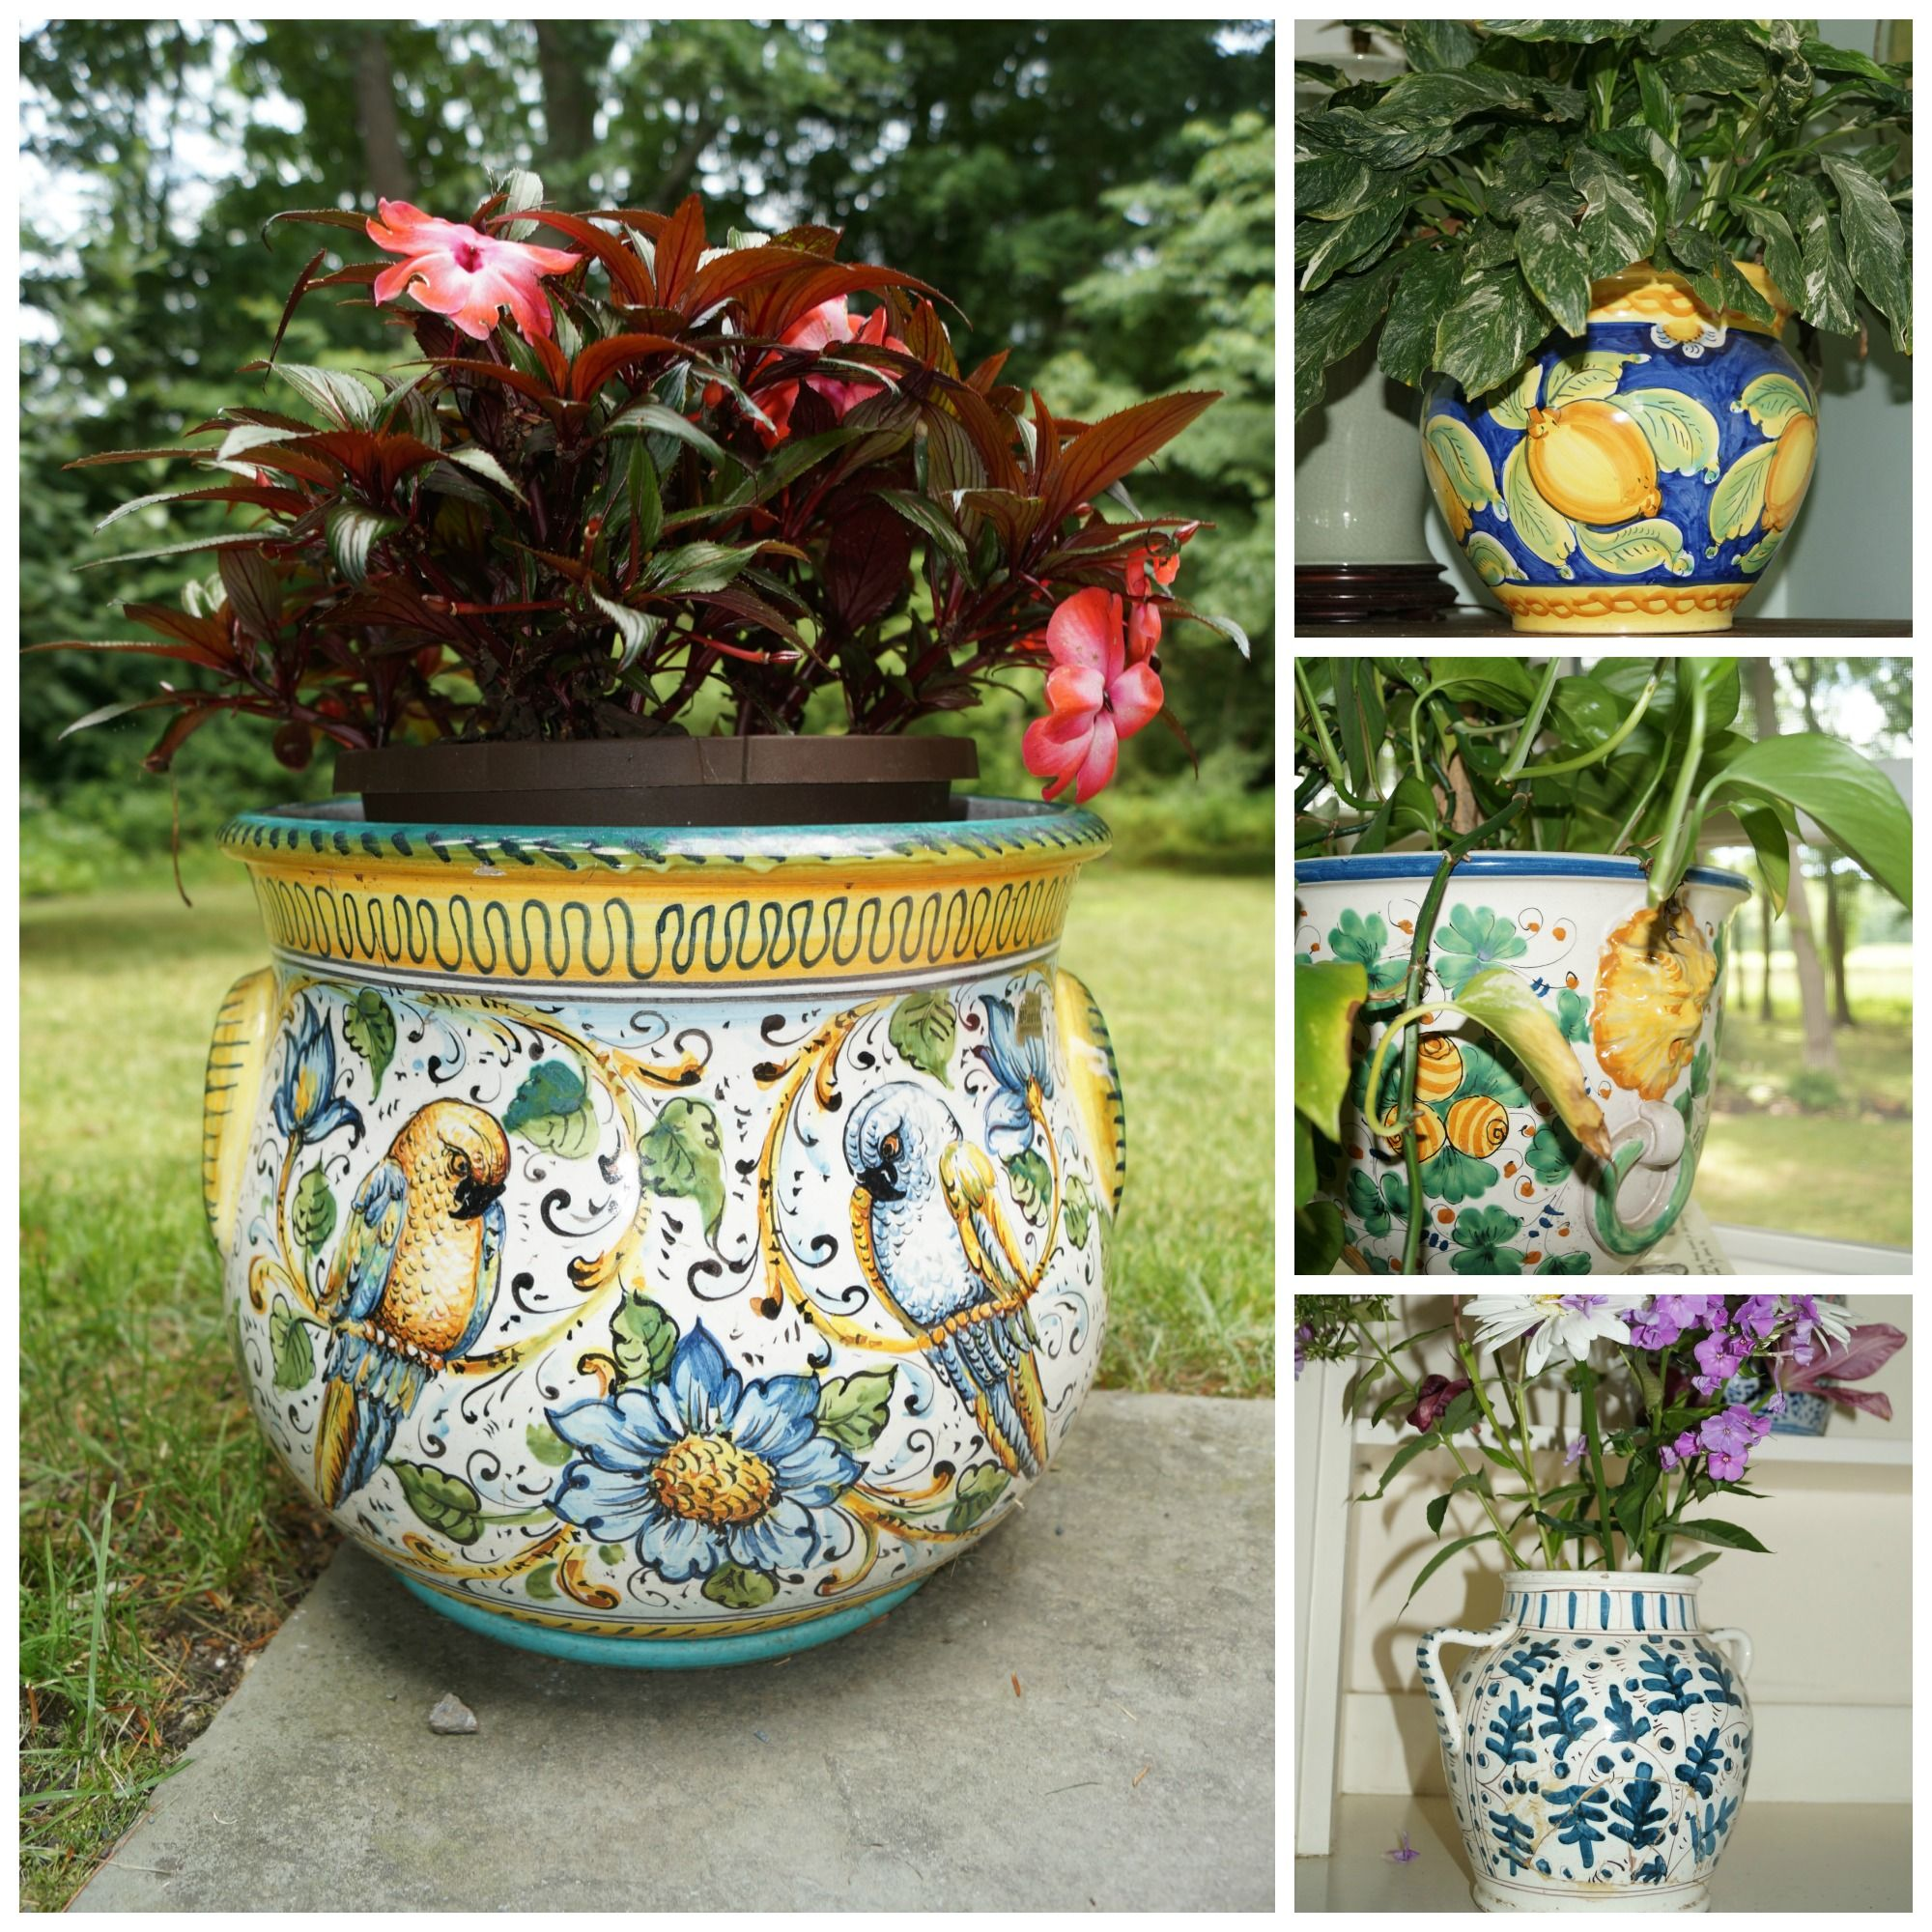 Ceramic Pottery For Plants Italian Planter Collage Planters Planters Planters